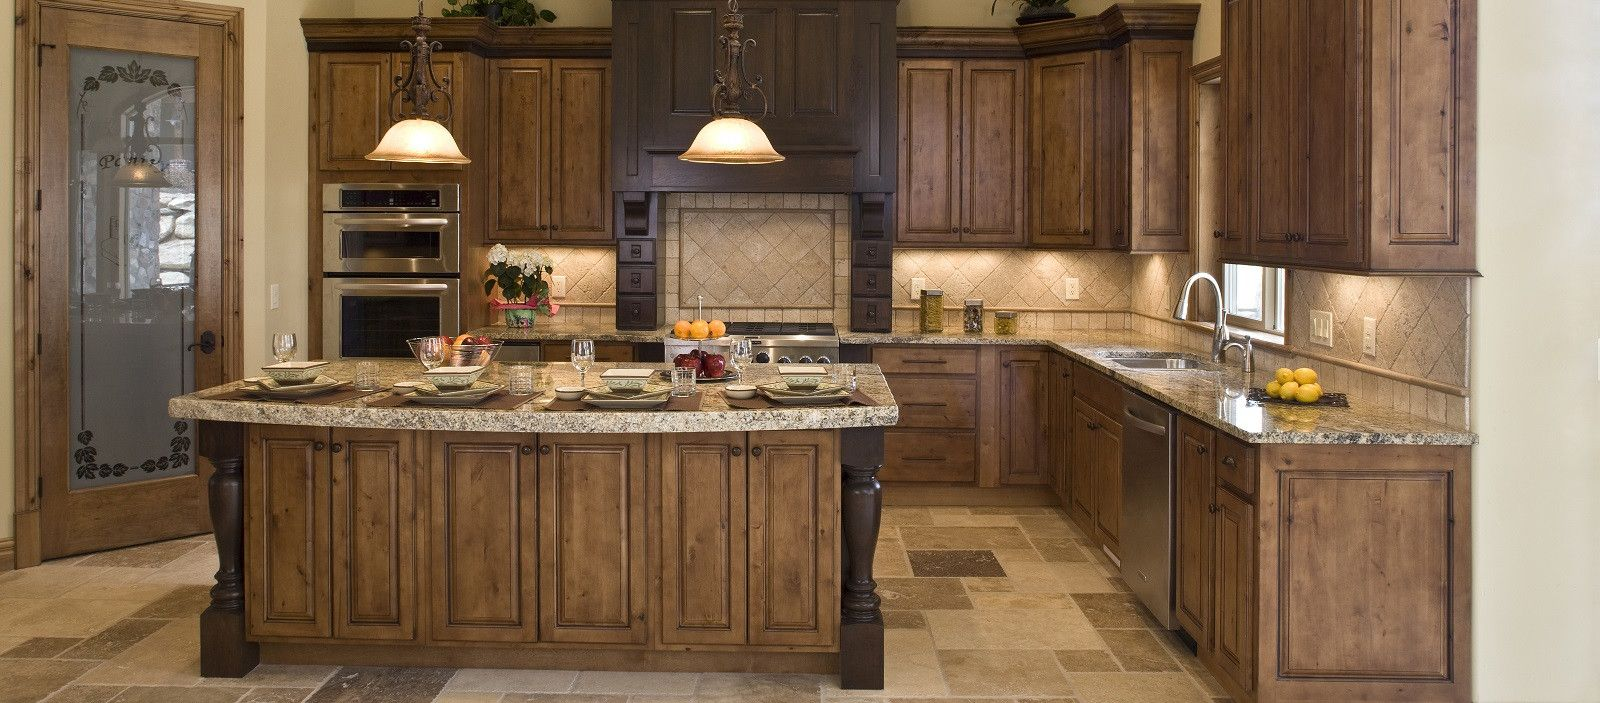 Delicieux 55+ Kitchen Cabinets Salt Lake City   Best Kitchen Cabinet Ideas Check More  At Http